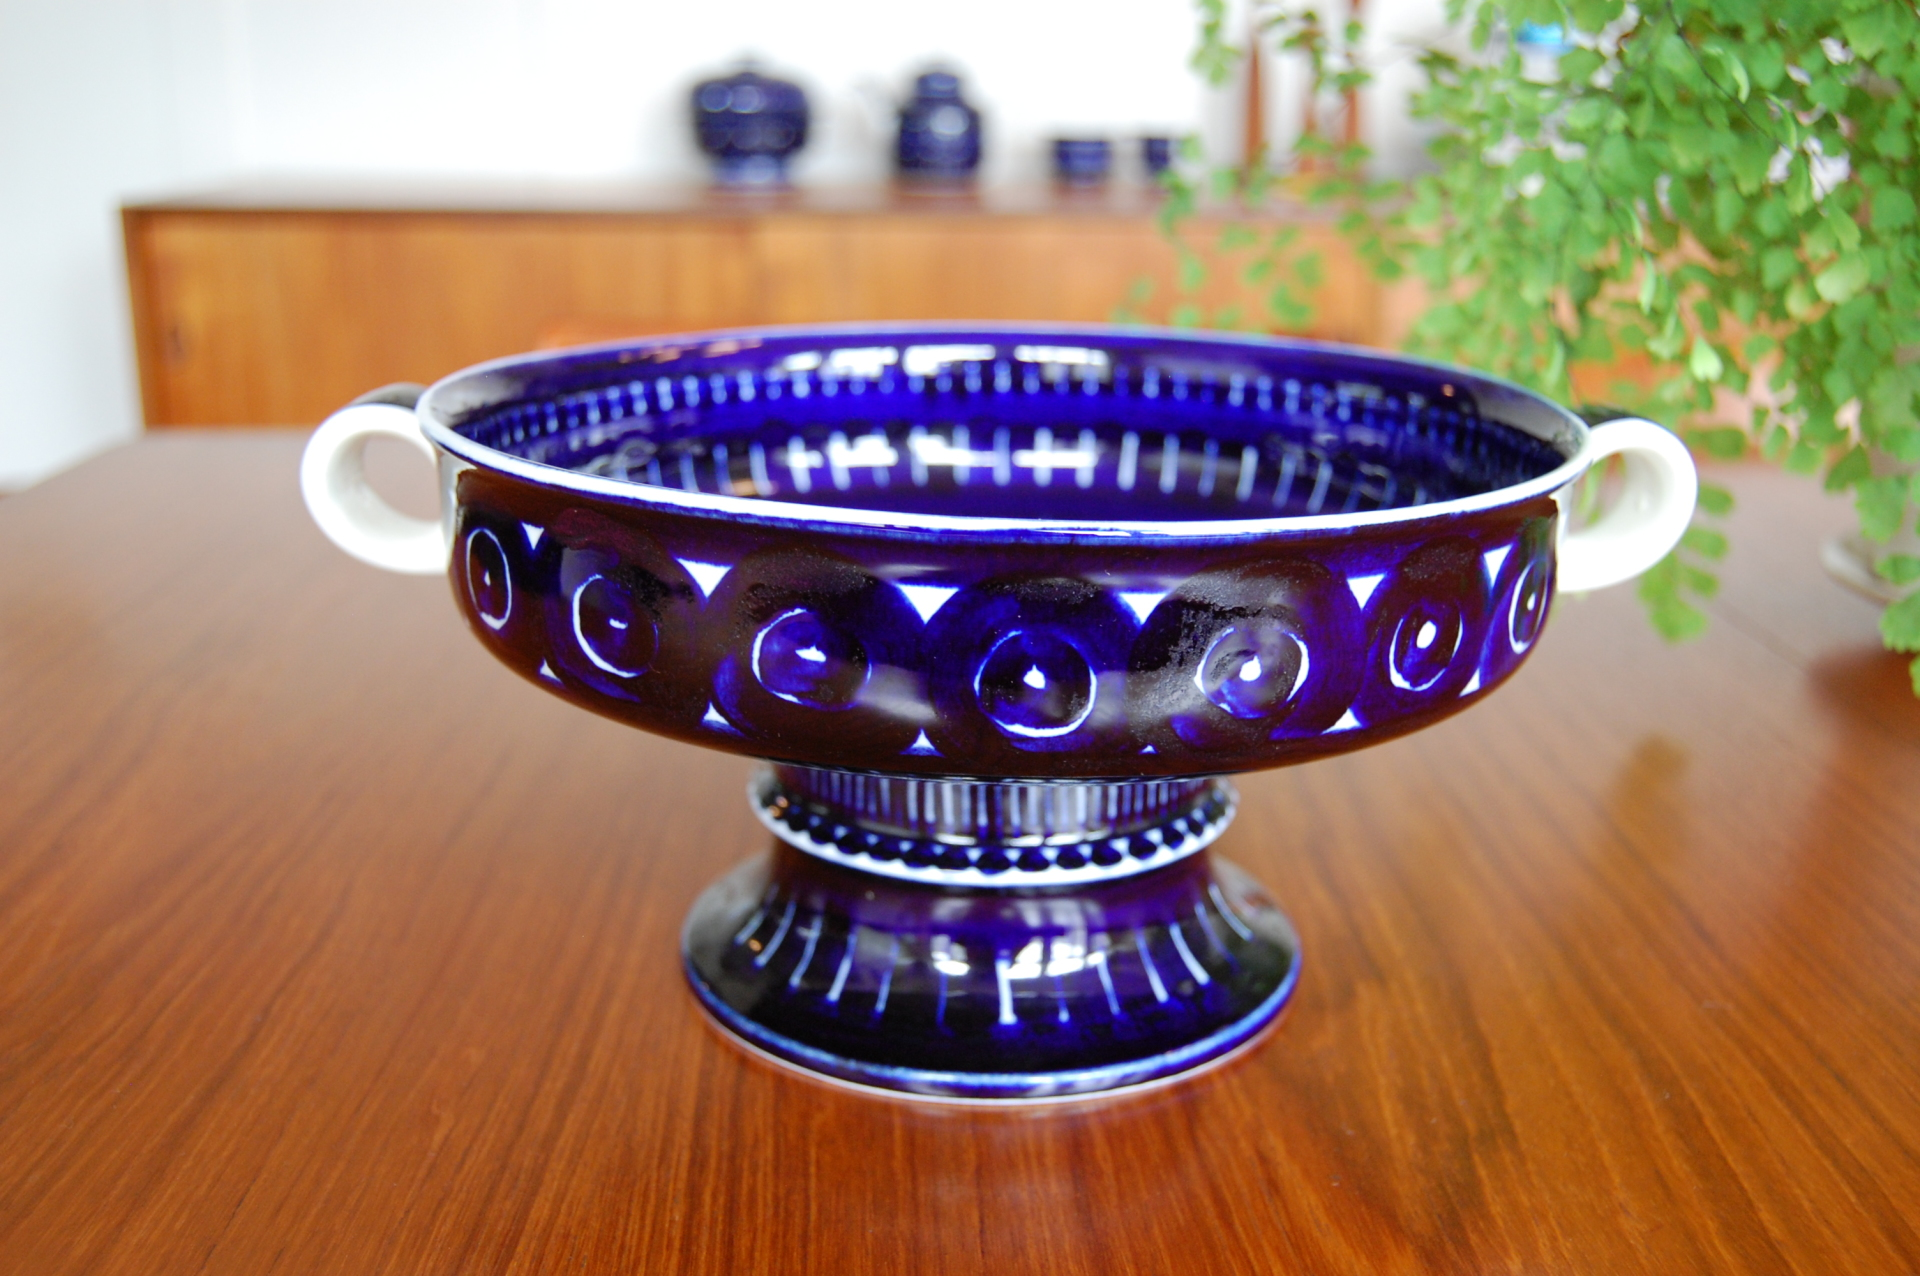 Danish modern, mcm, mod, Scandinavian, home decor, Arabia Finland, Valencia, Footed Fruit Bowl, with handles, Ulla Procope, cobalt blue,  vintage,  midcentury55, Seattle